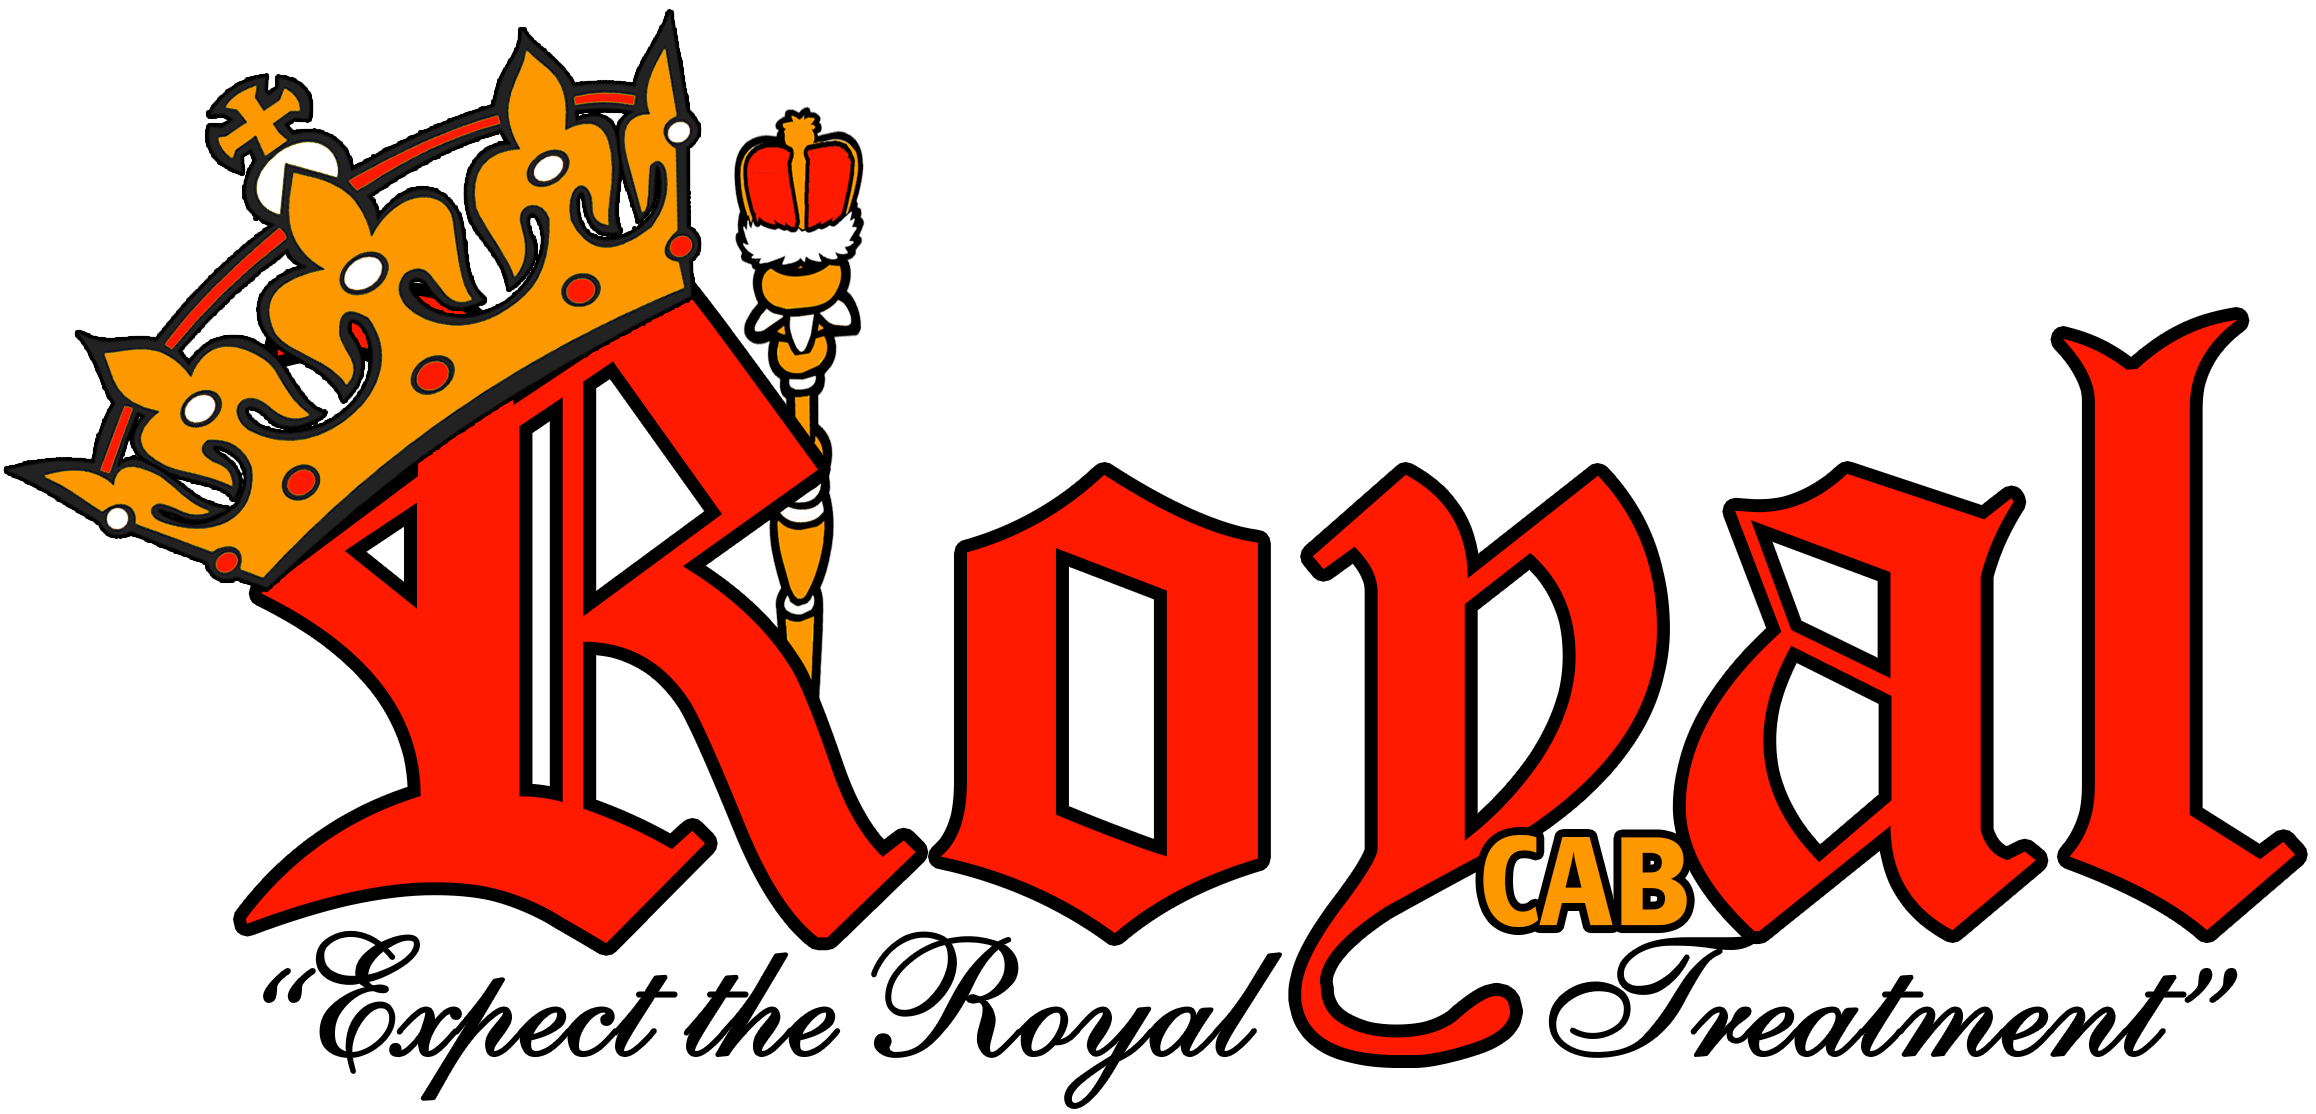 Royal Cab